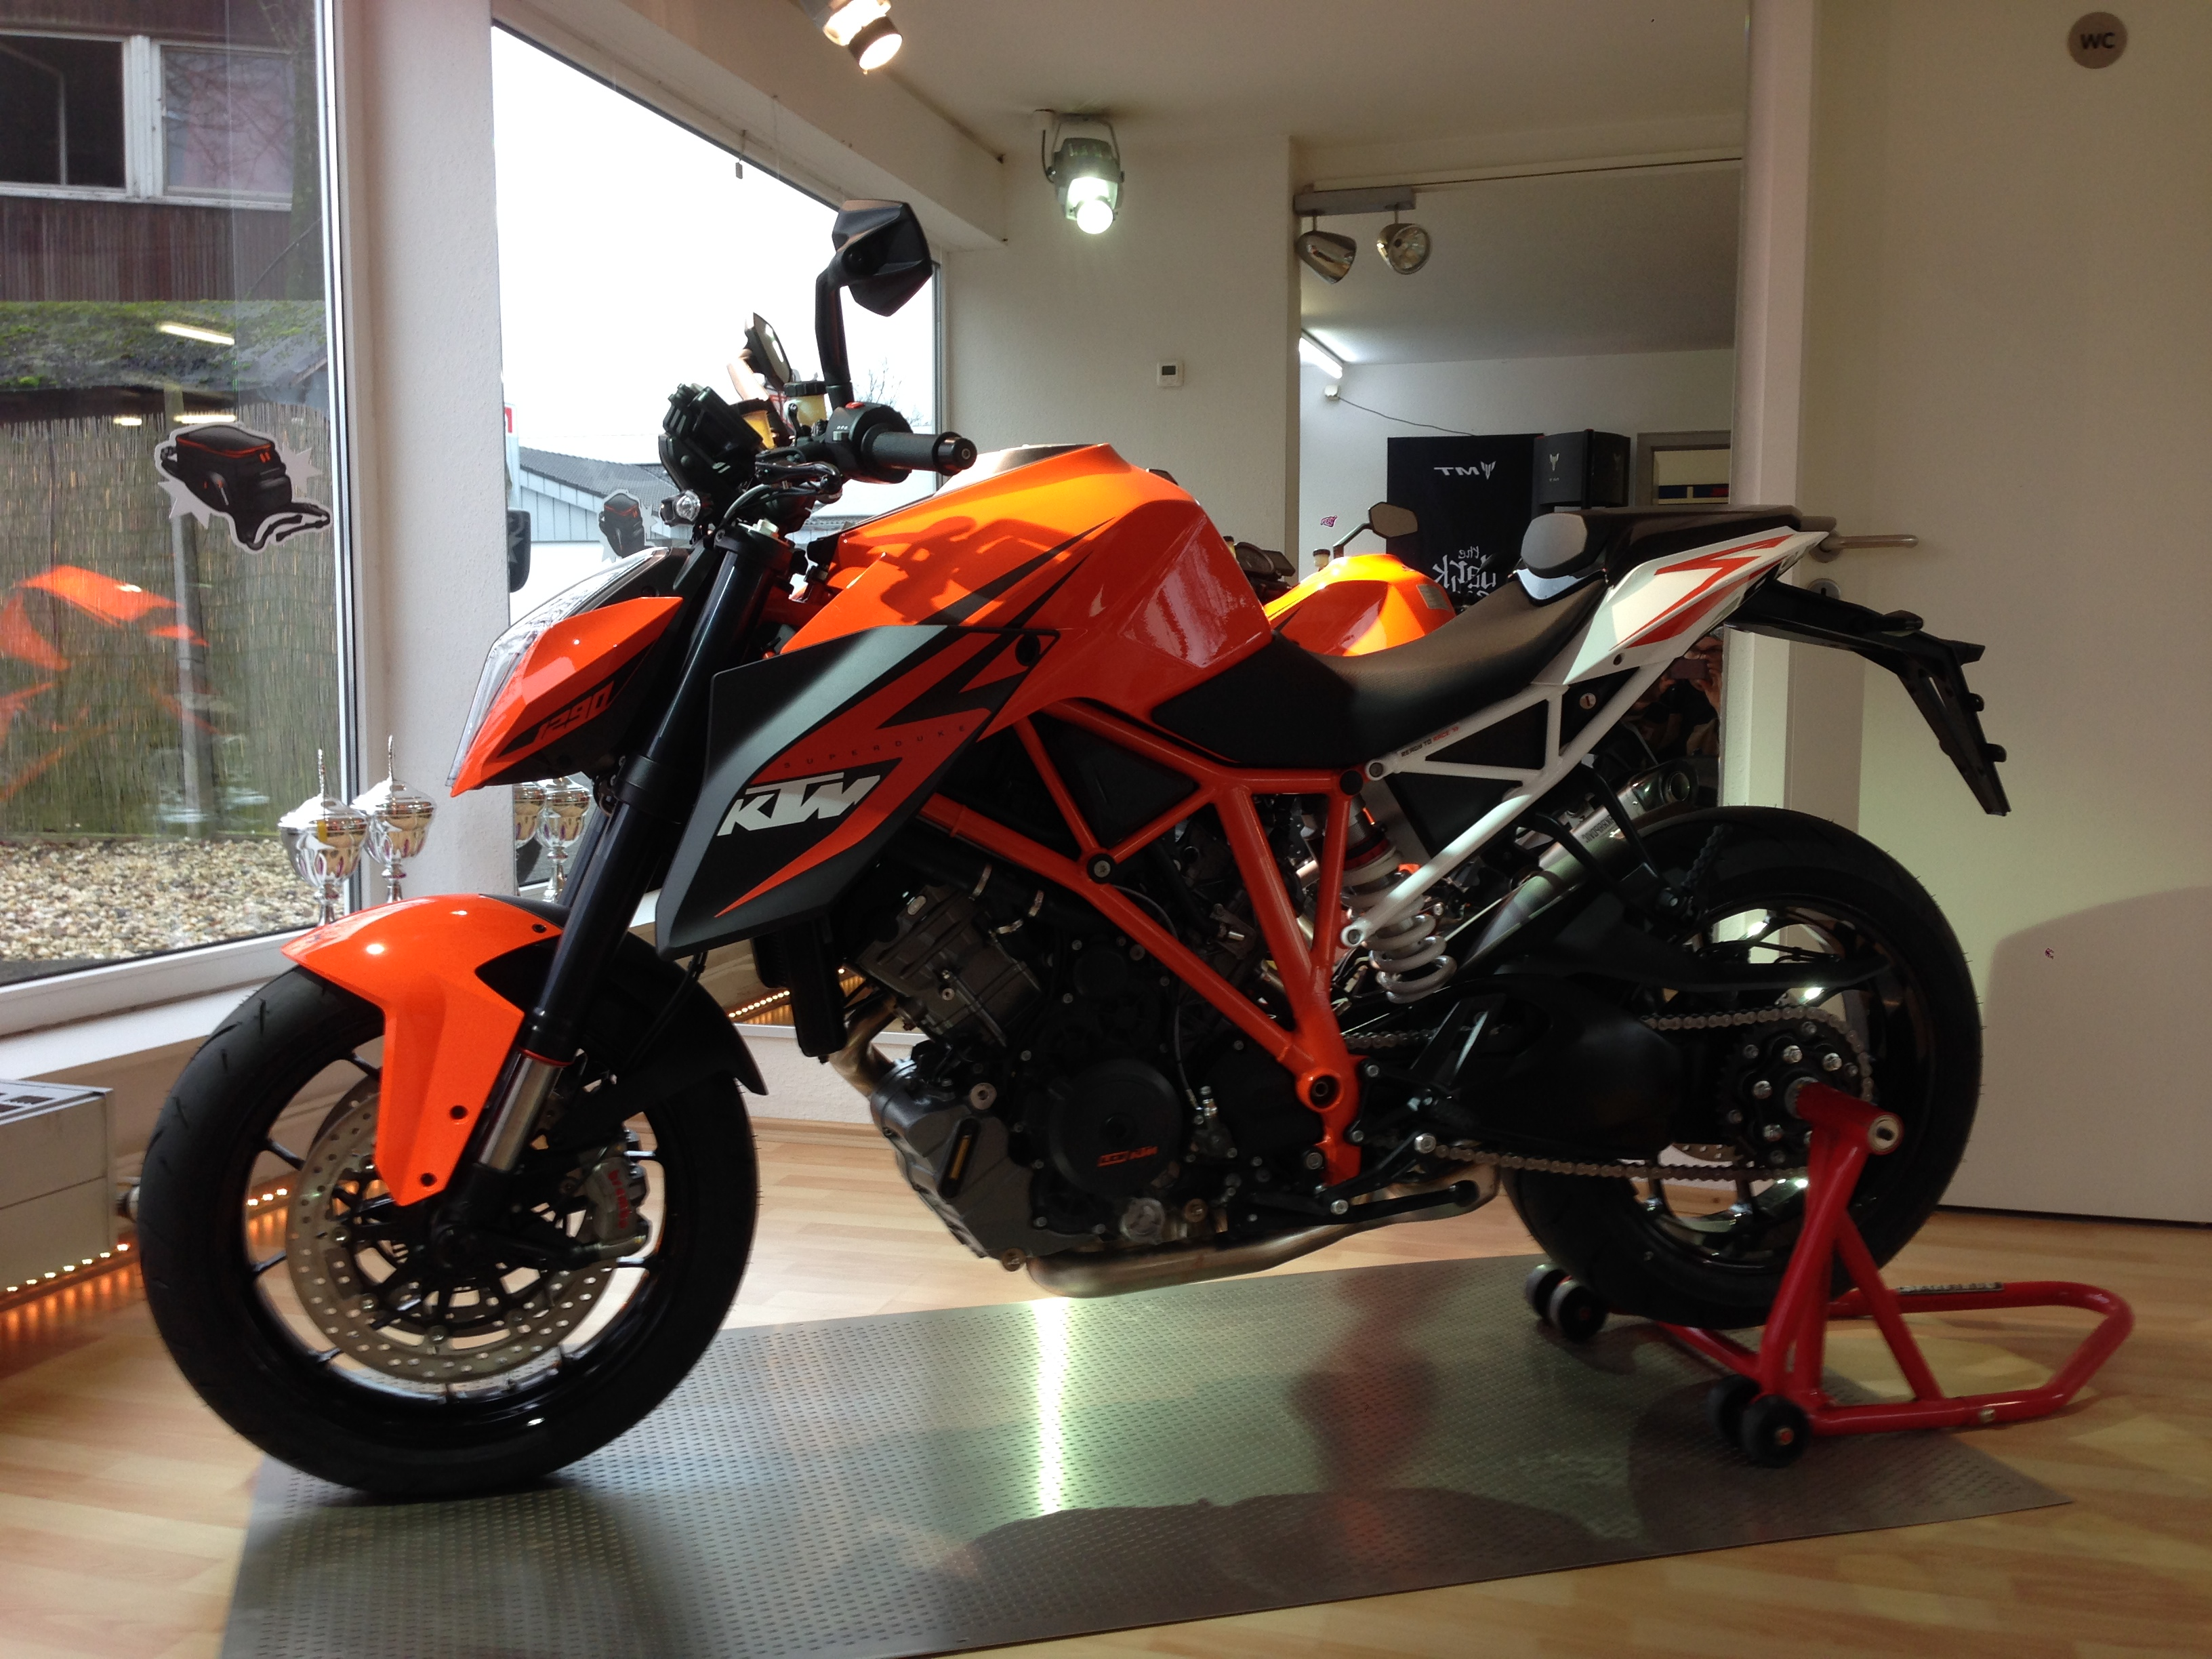 La KTM Super Duke 1290R Image